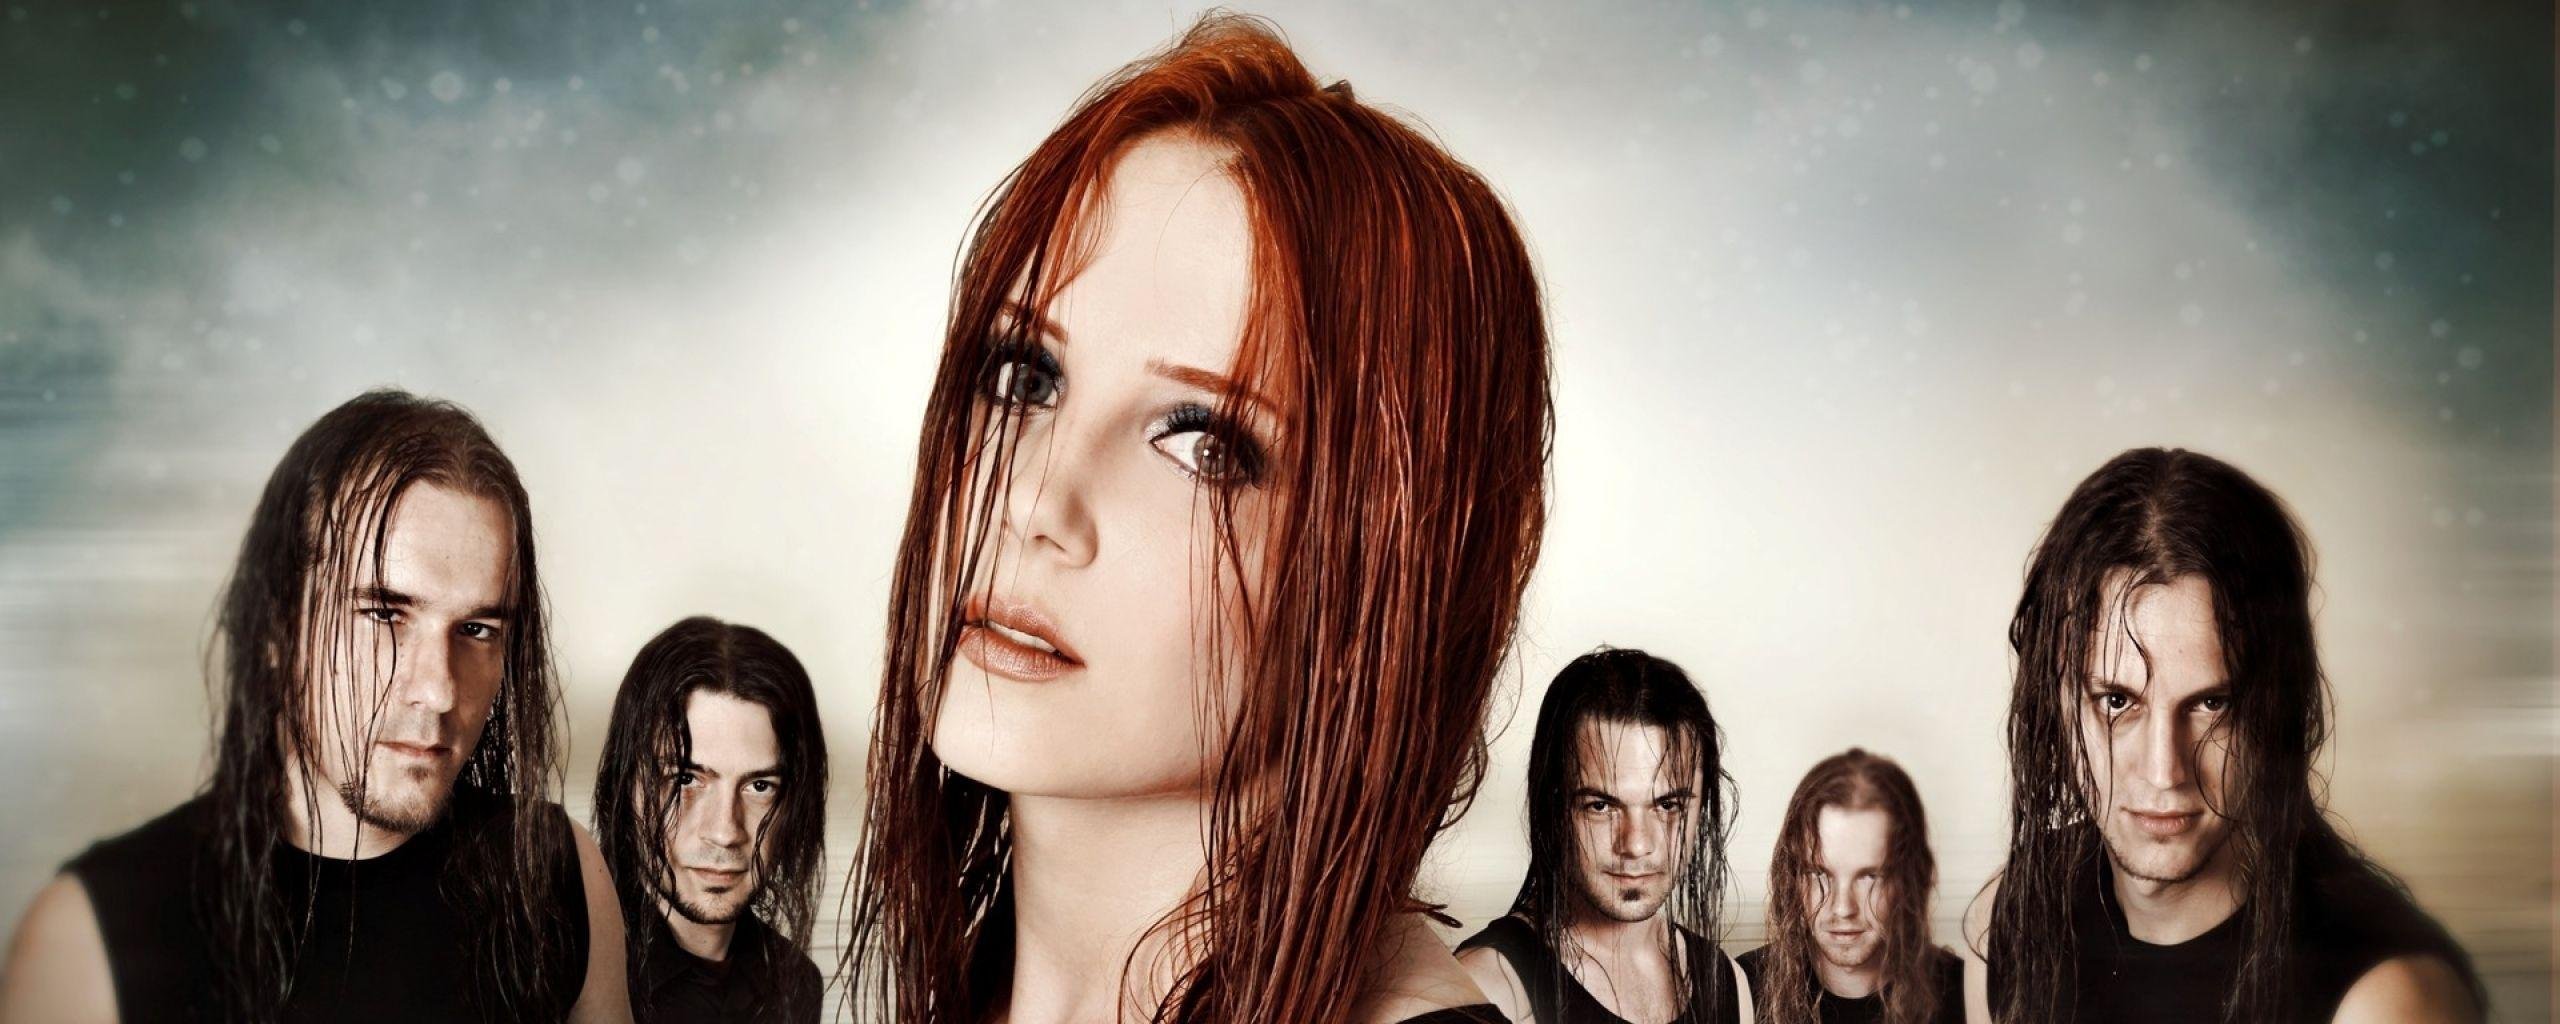 Download Wallpaper 2560x1024 Epica, Girl, Hair, Look, Background ...